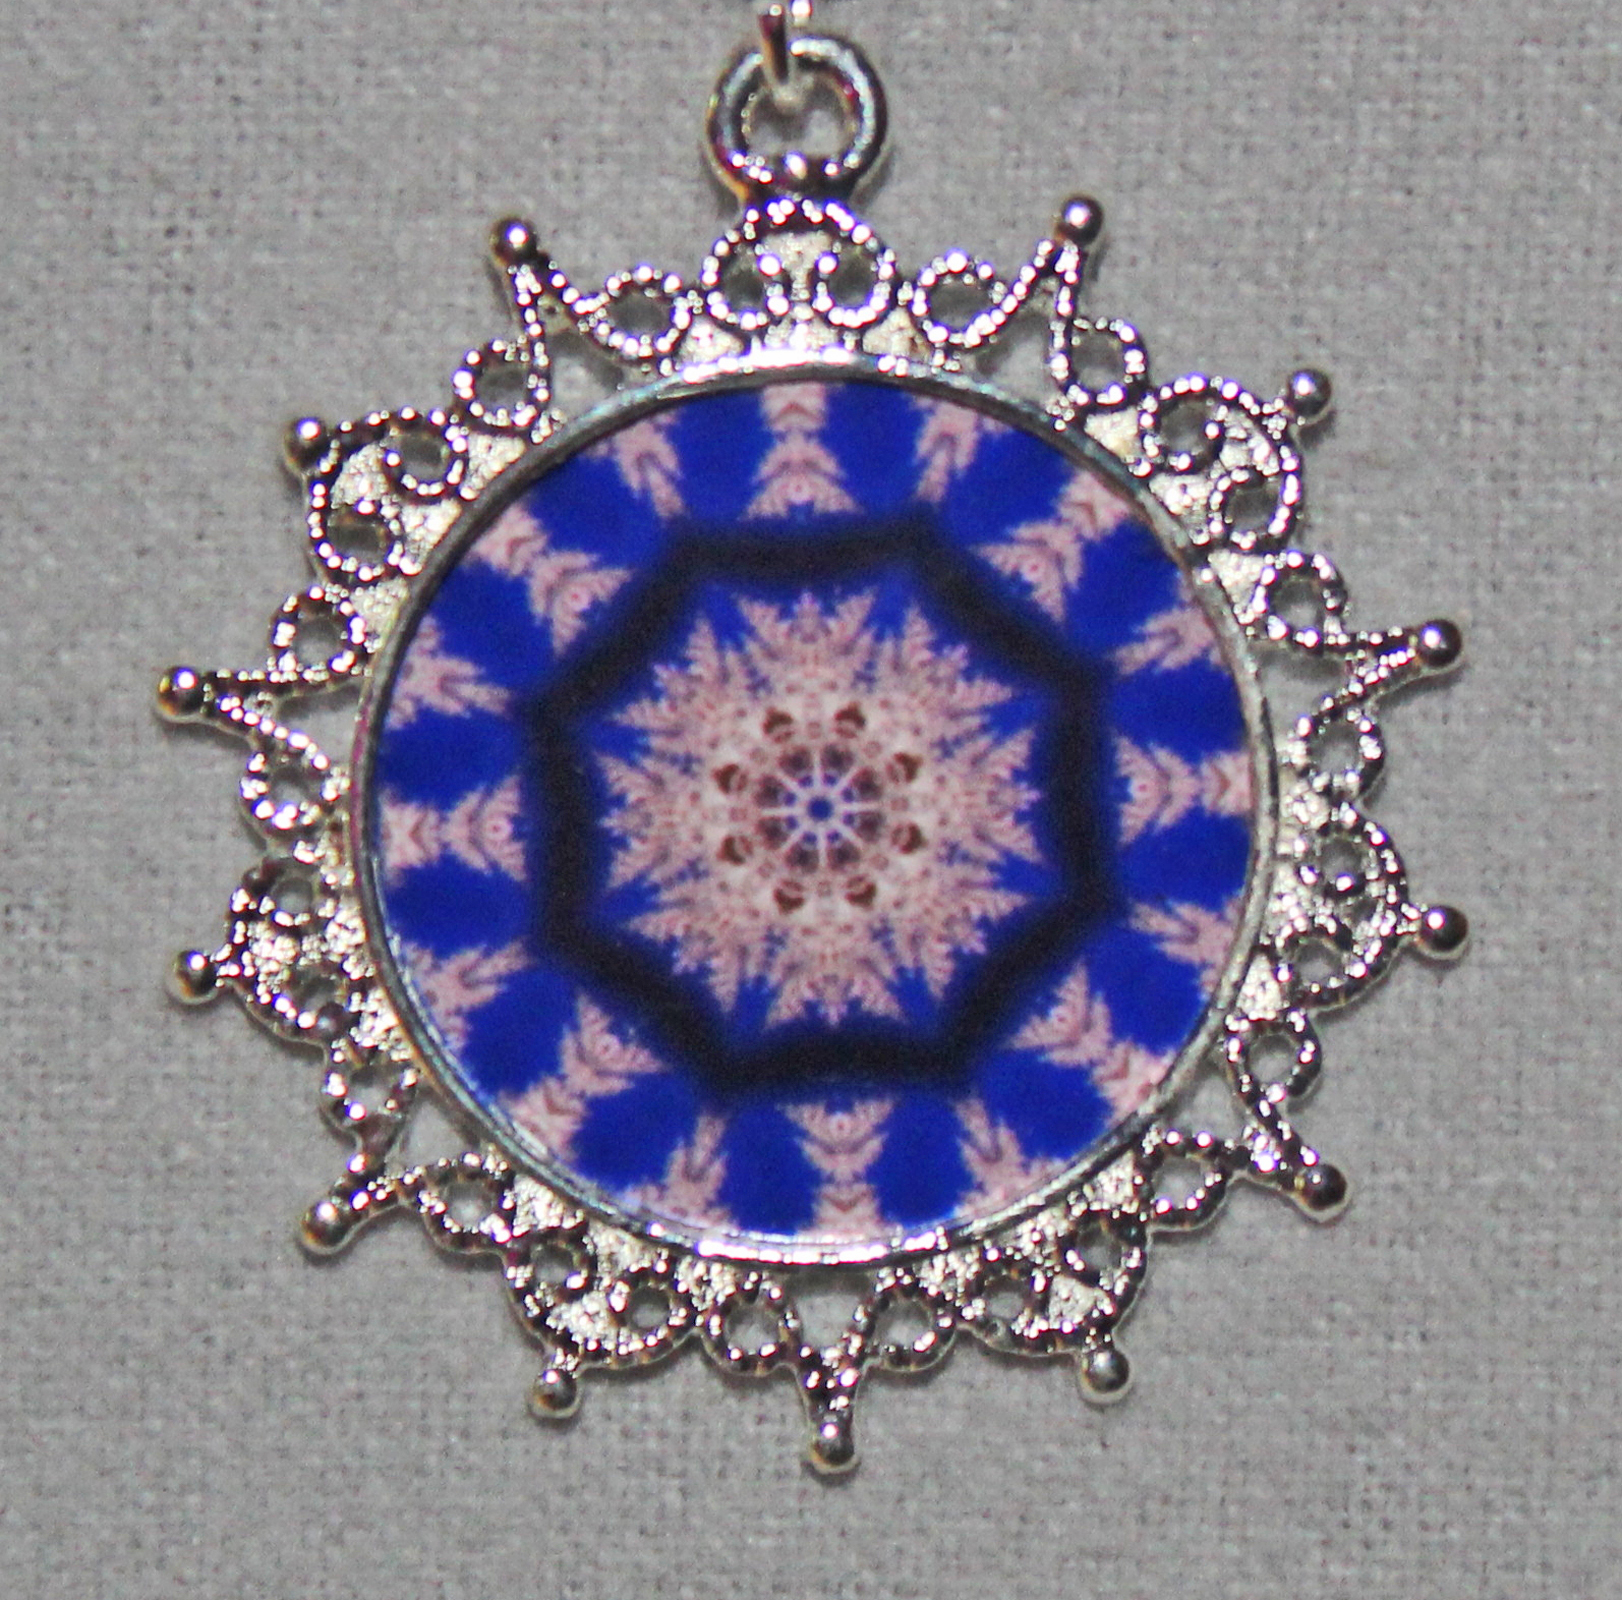 Snowflake Pendant Necklace OOAK Mandala Zen Unique Gift For Her Kaleidoscopic Winter Solstice 001 Exclusive